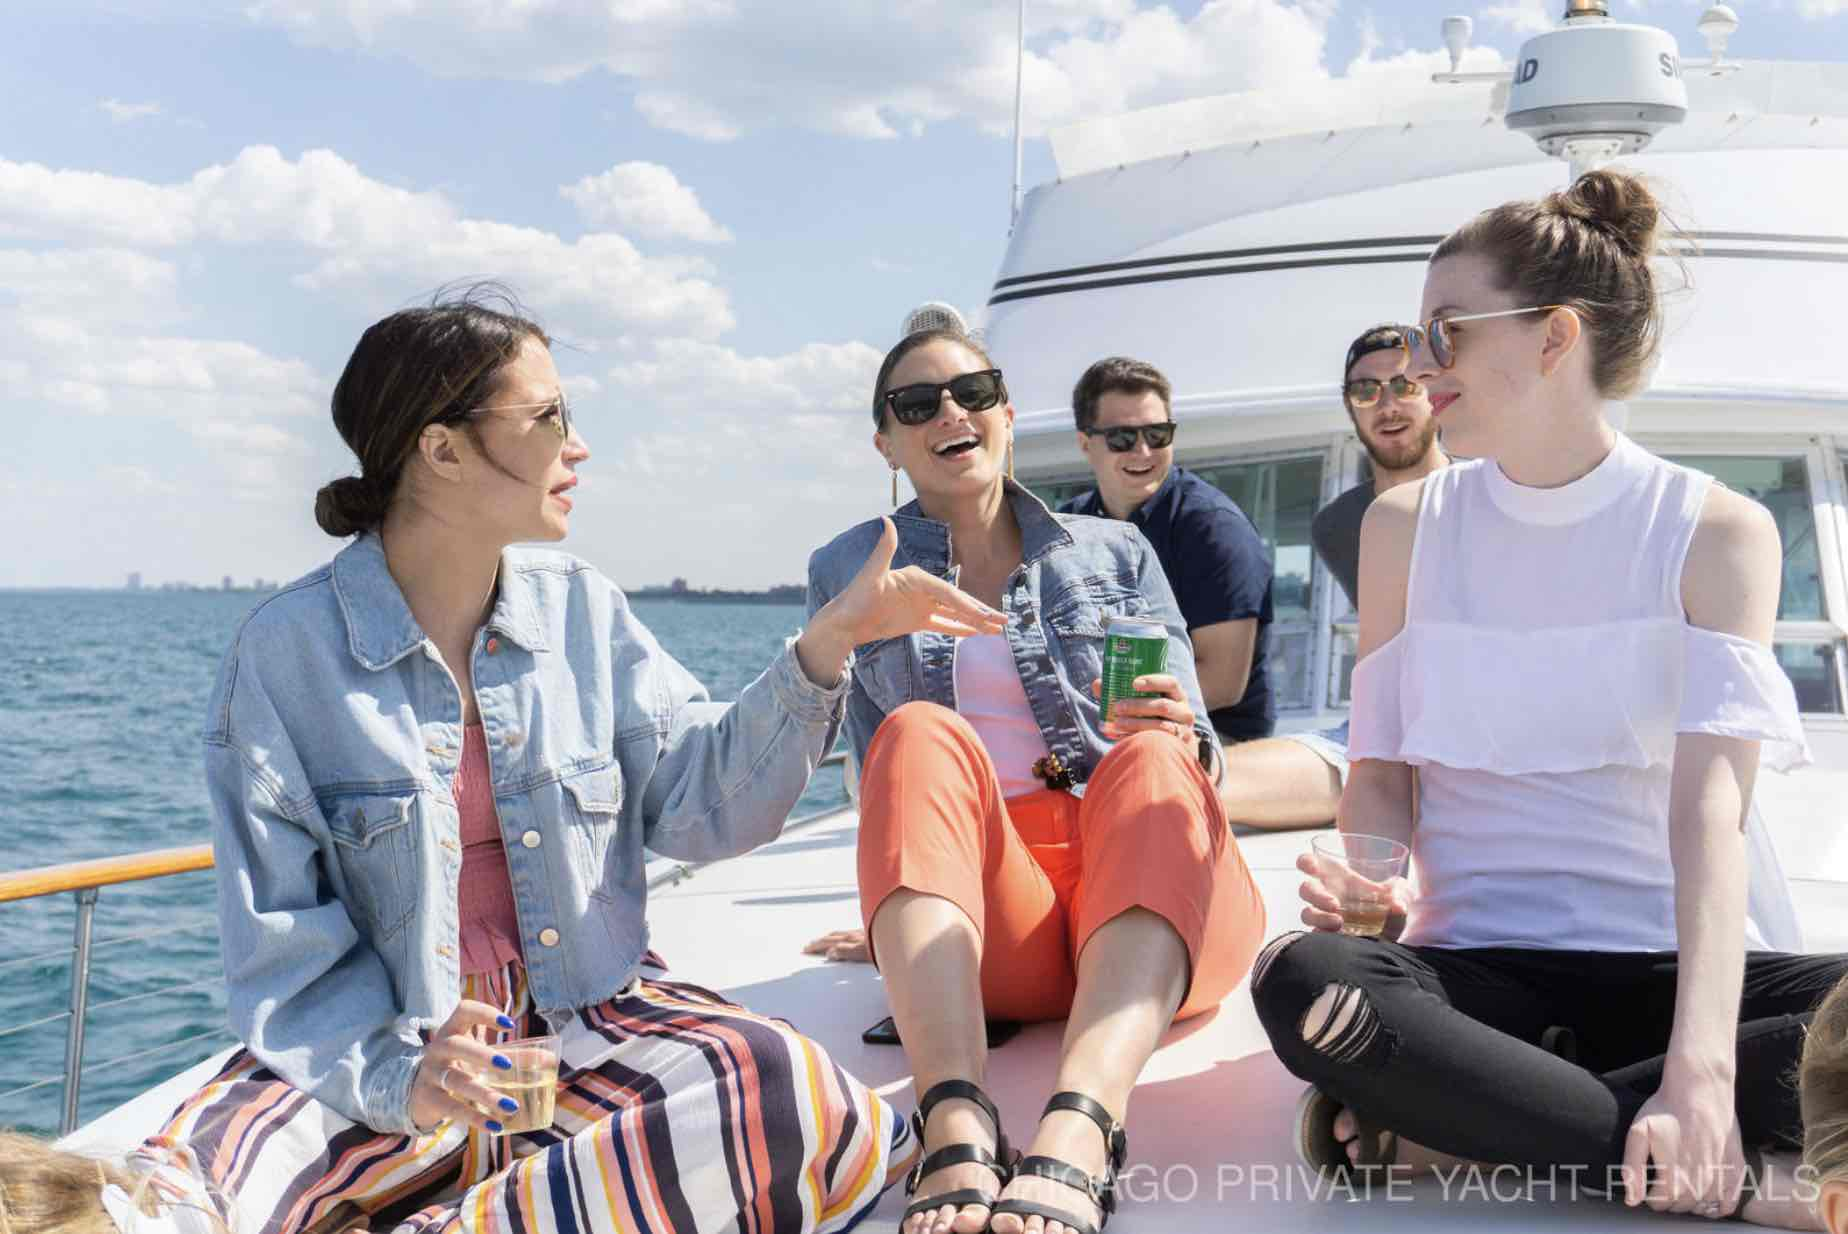 Chicago private yacht rental charter overnight accommodations